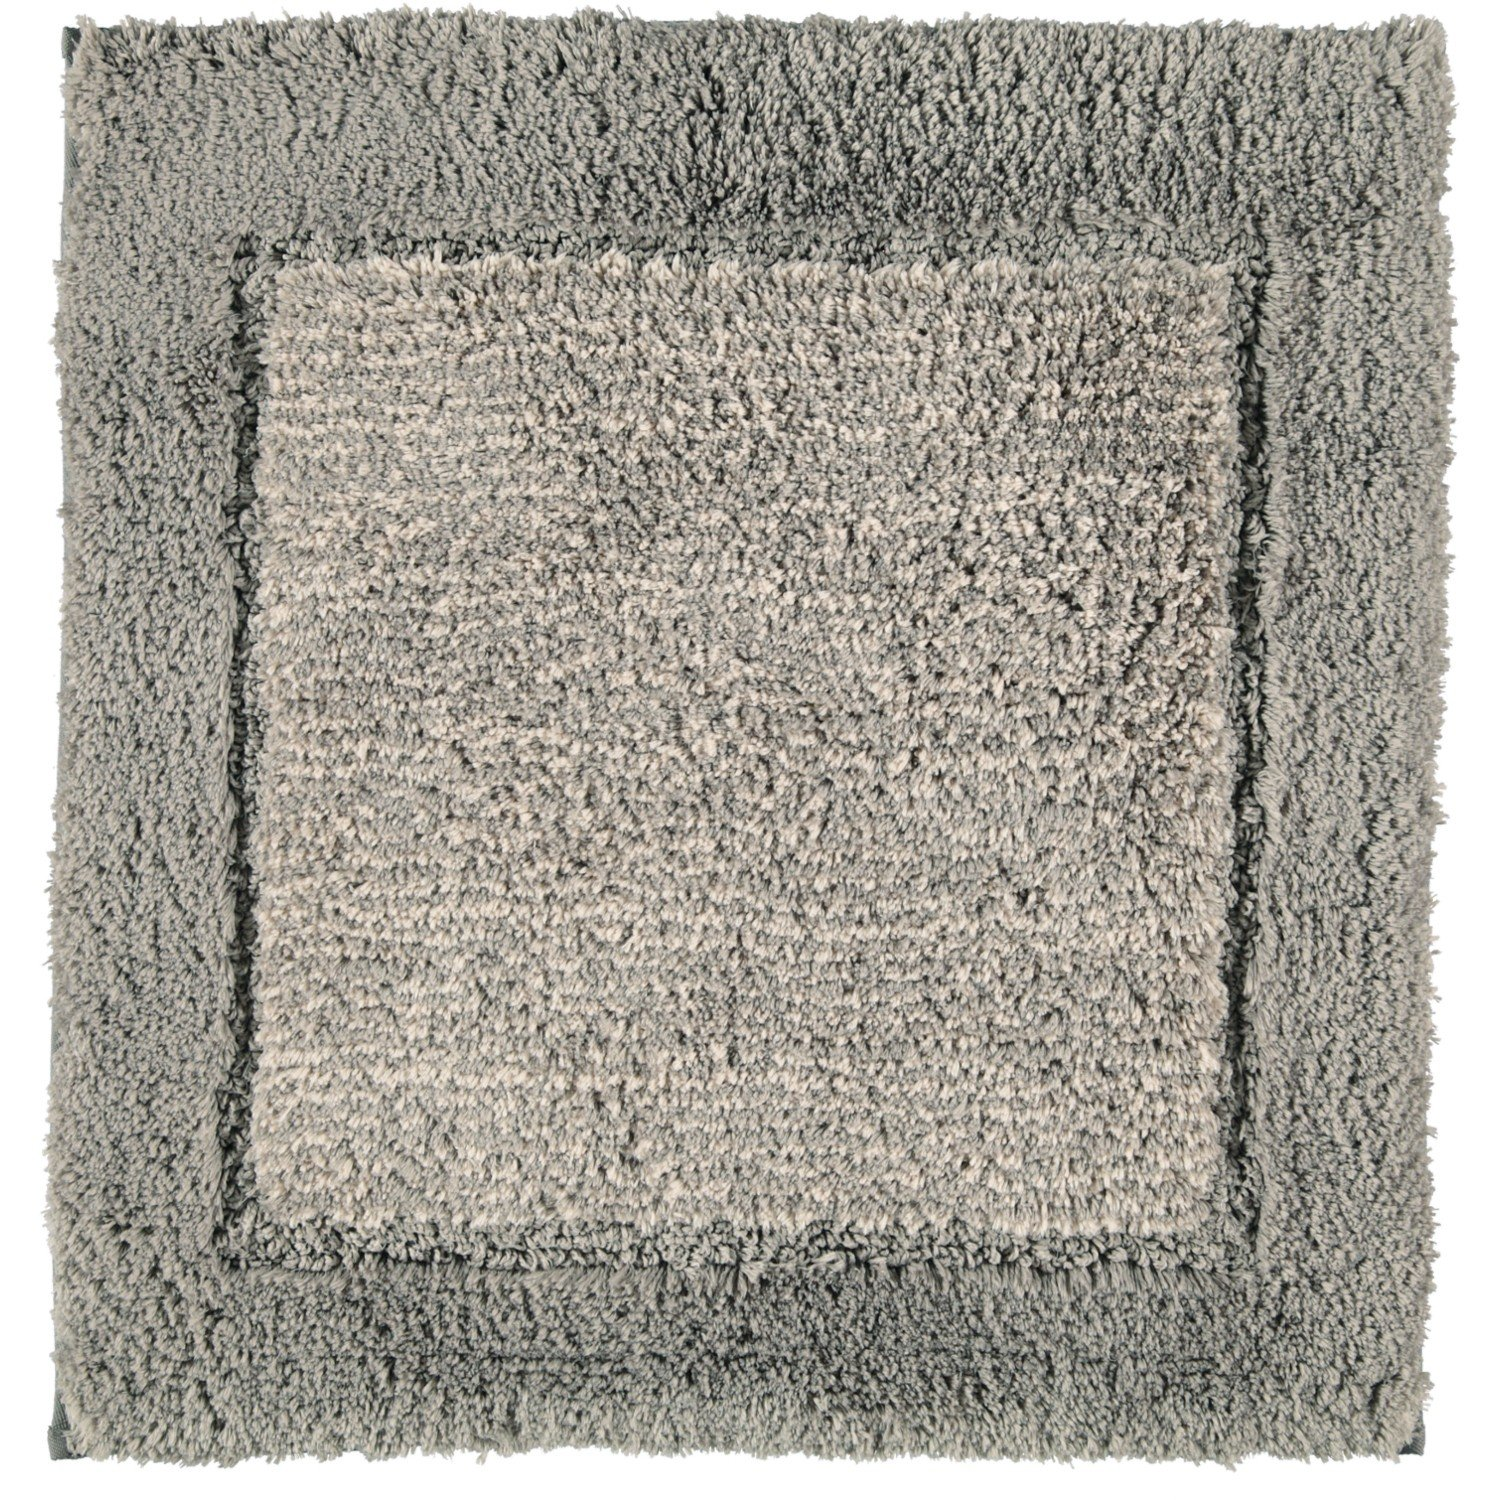 Cawö Bath Rug Available in Various Colours and Sizes (590), Graphit (70), 60x60 cm